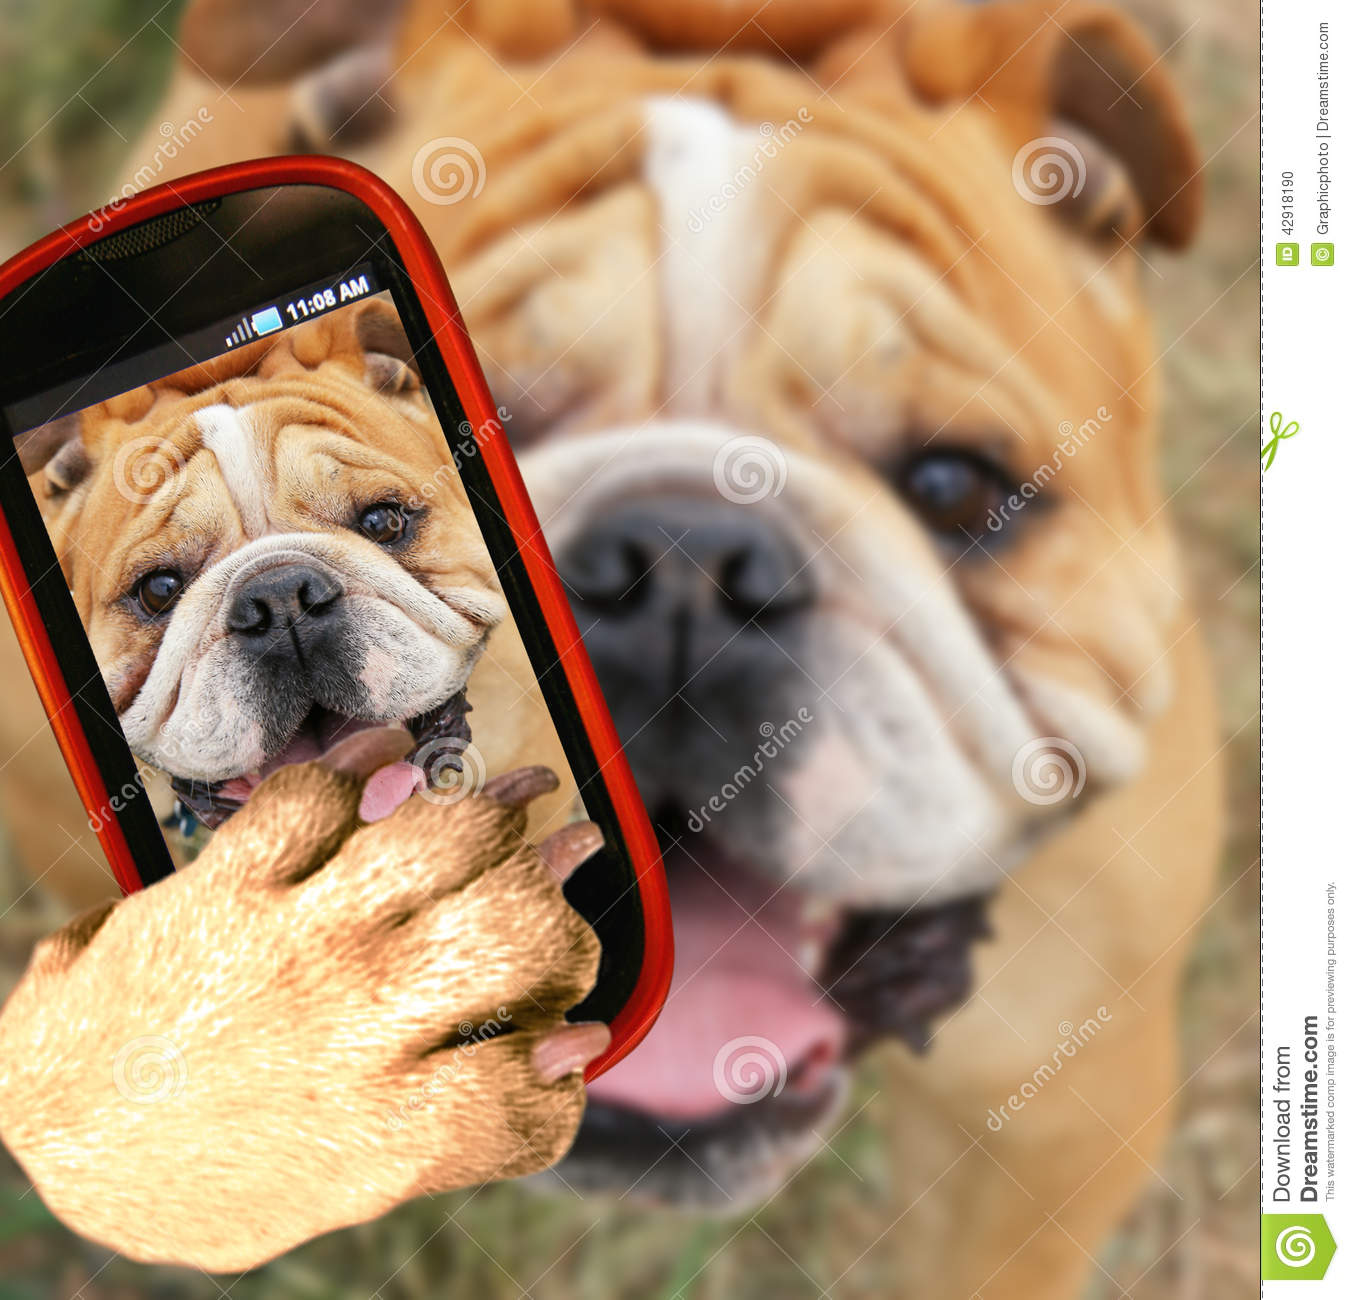 Fall Cell Phone Wallpapers Bulldog Stock Photo Image Of Teeth Mouth Skin Whiskers